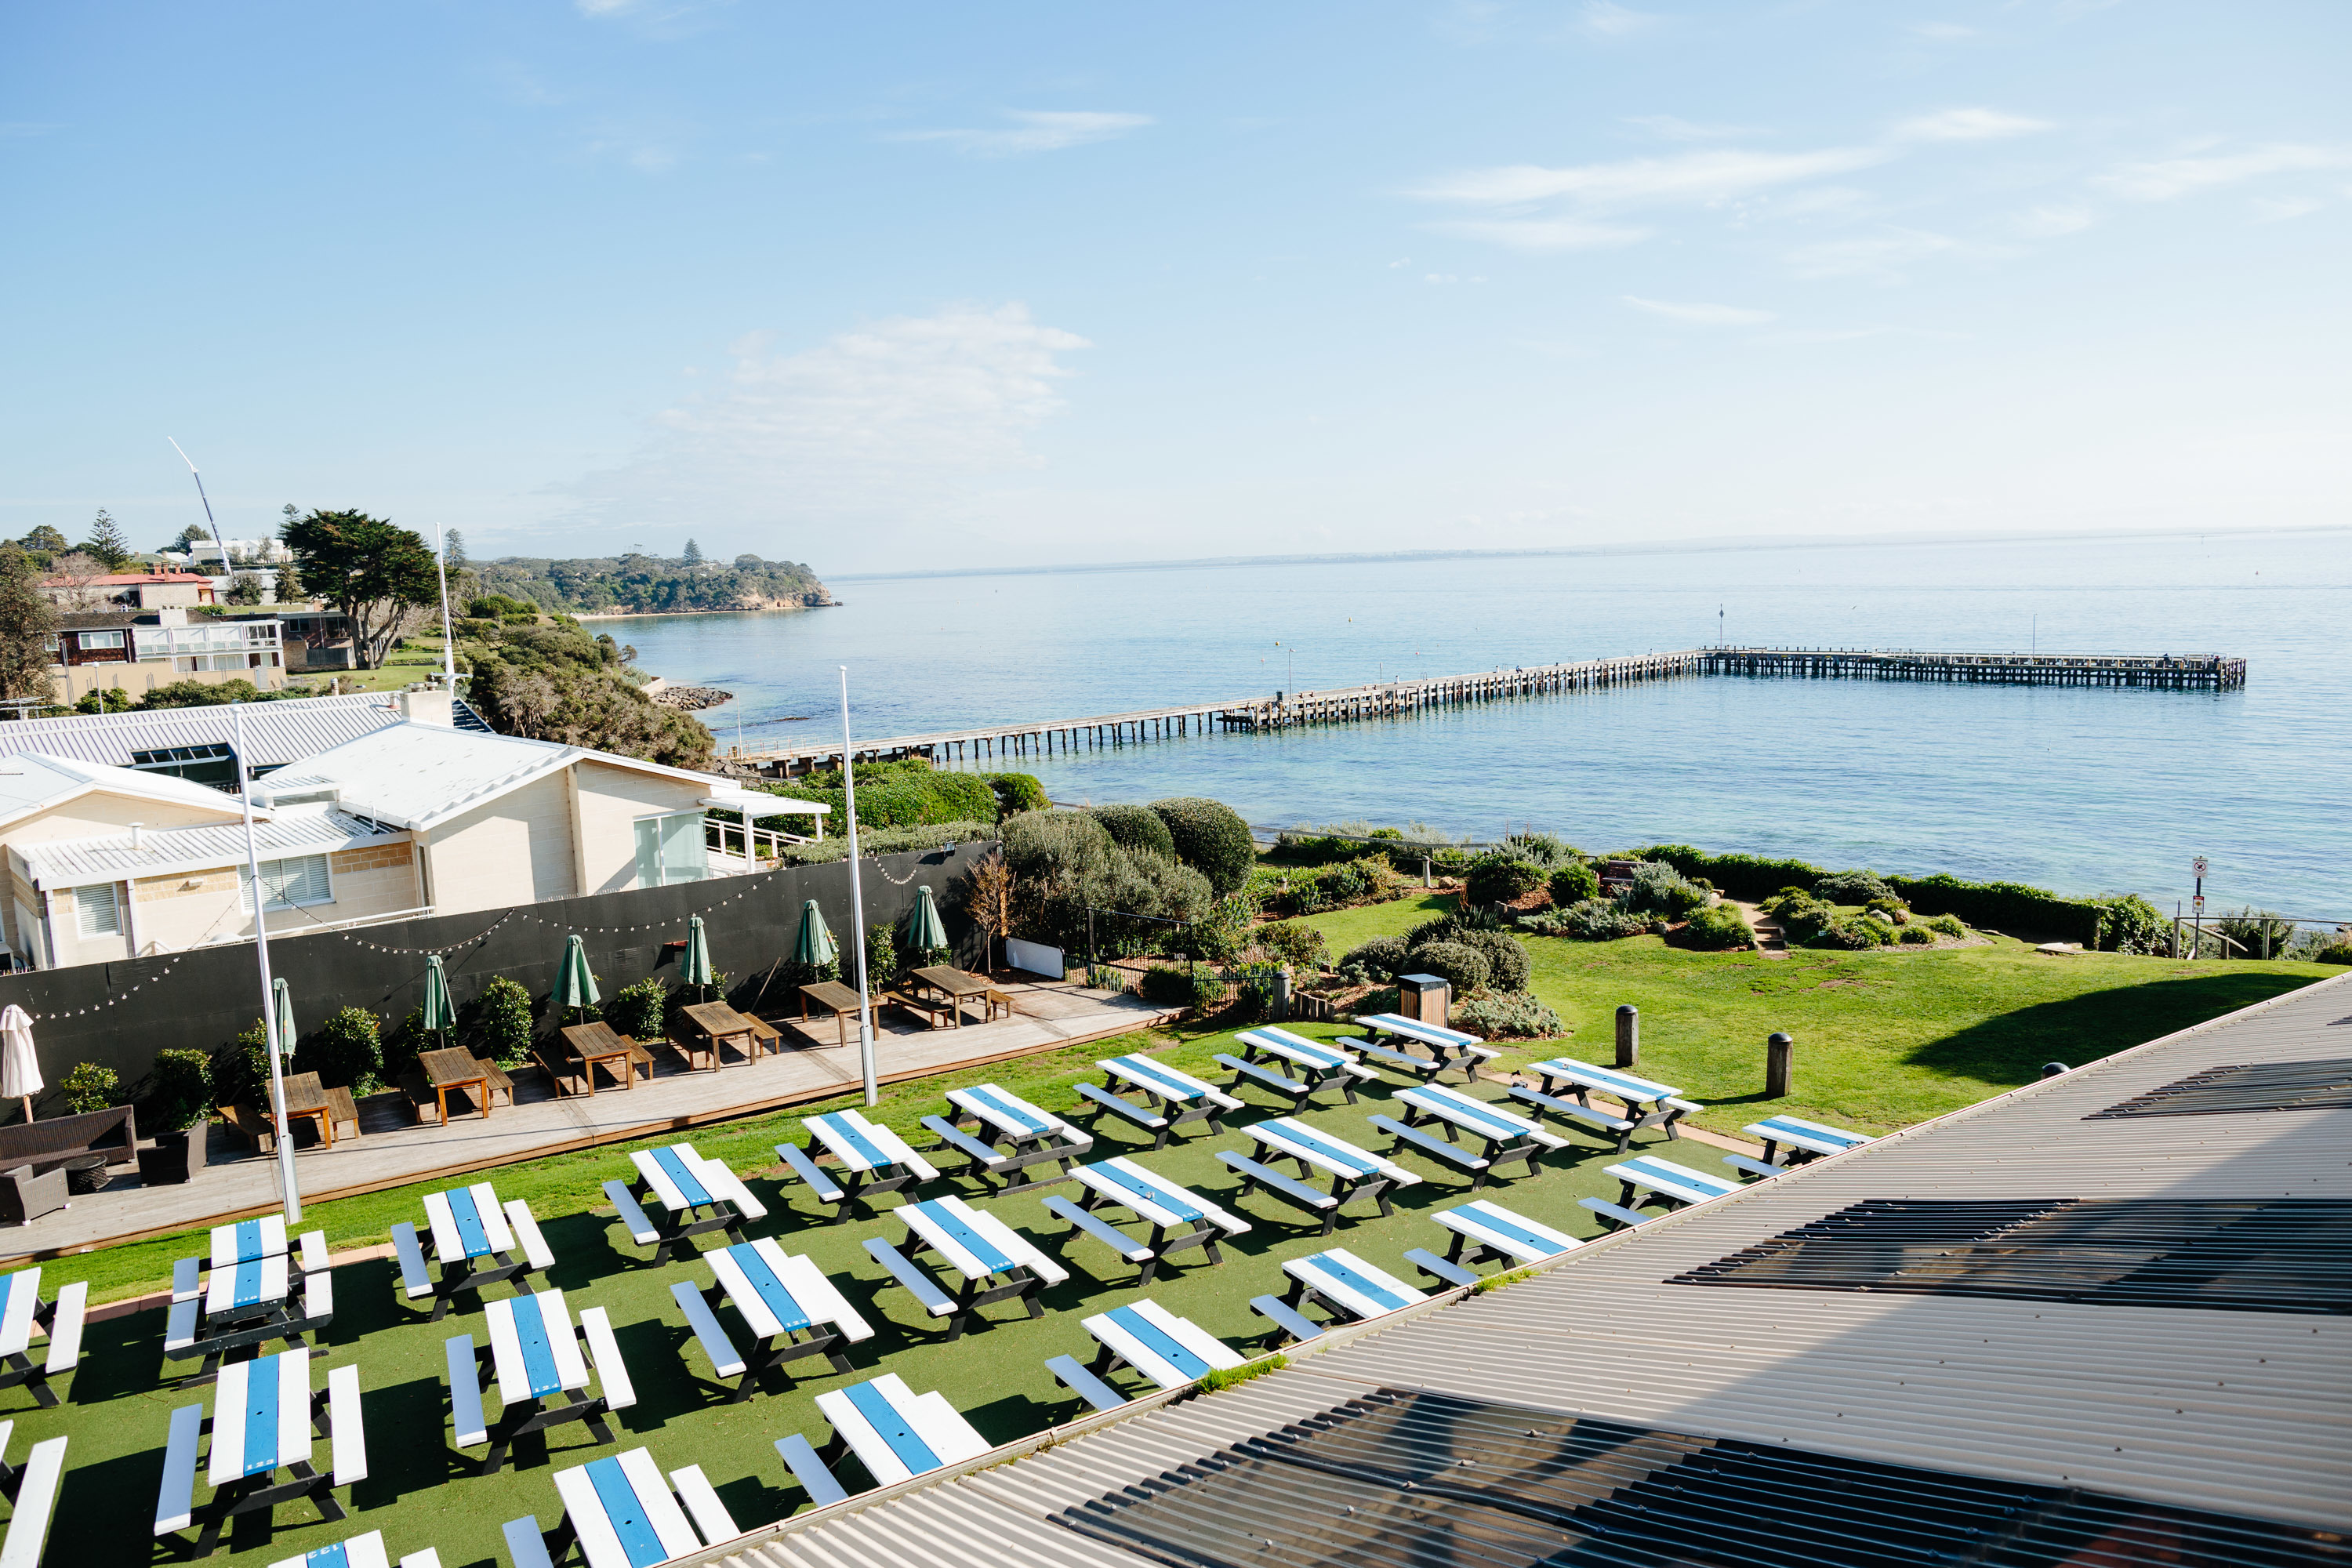 Portsea Hotel outdoors